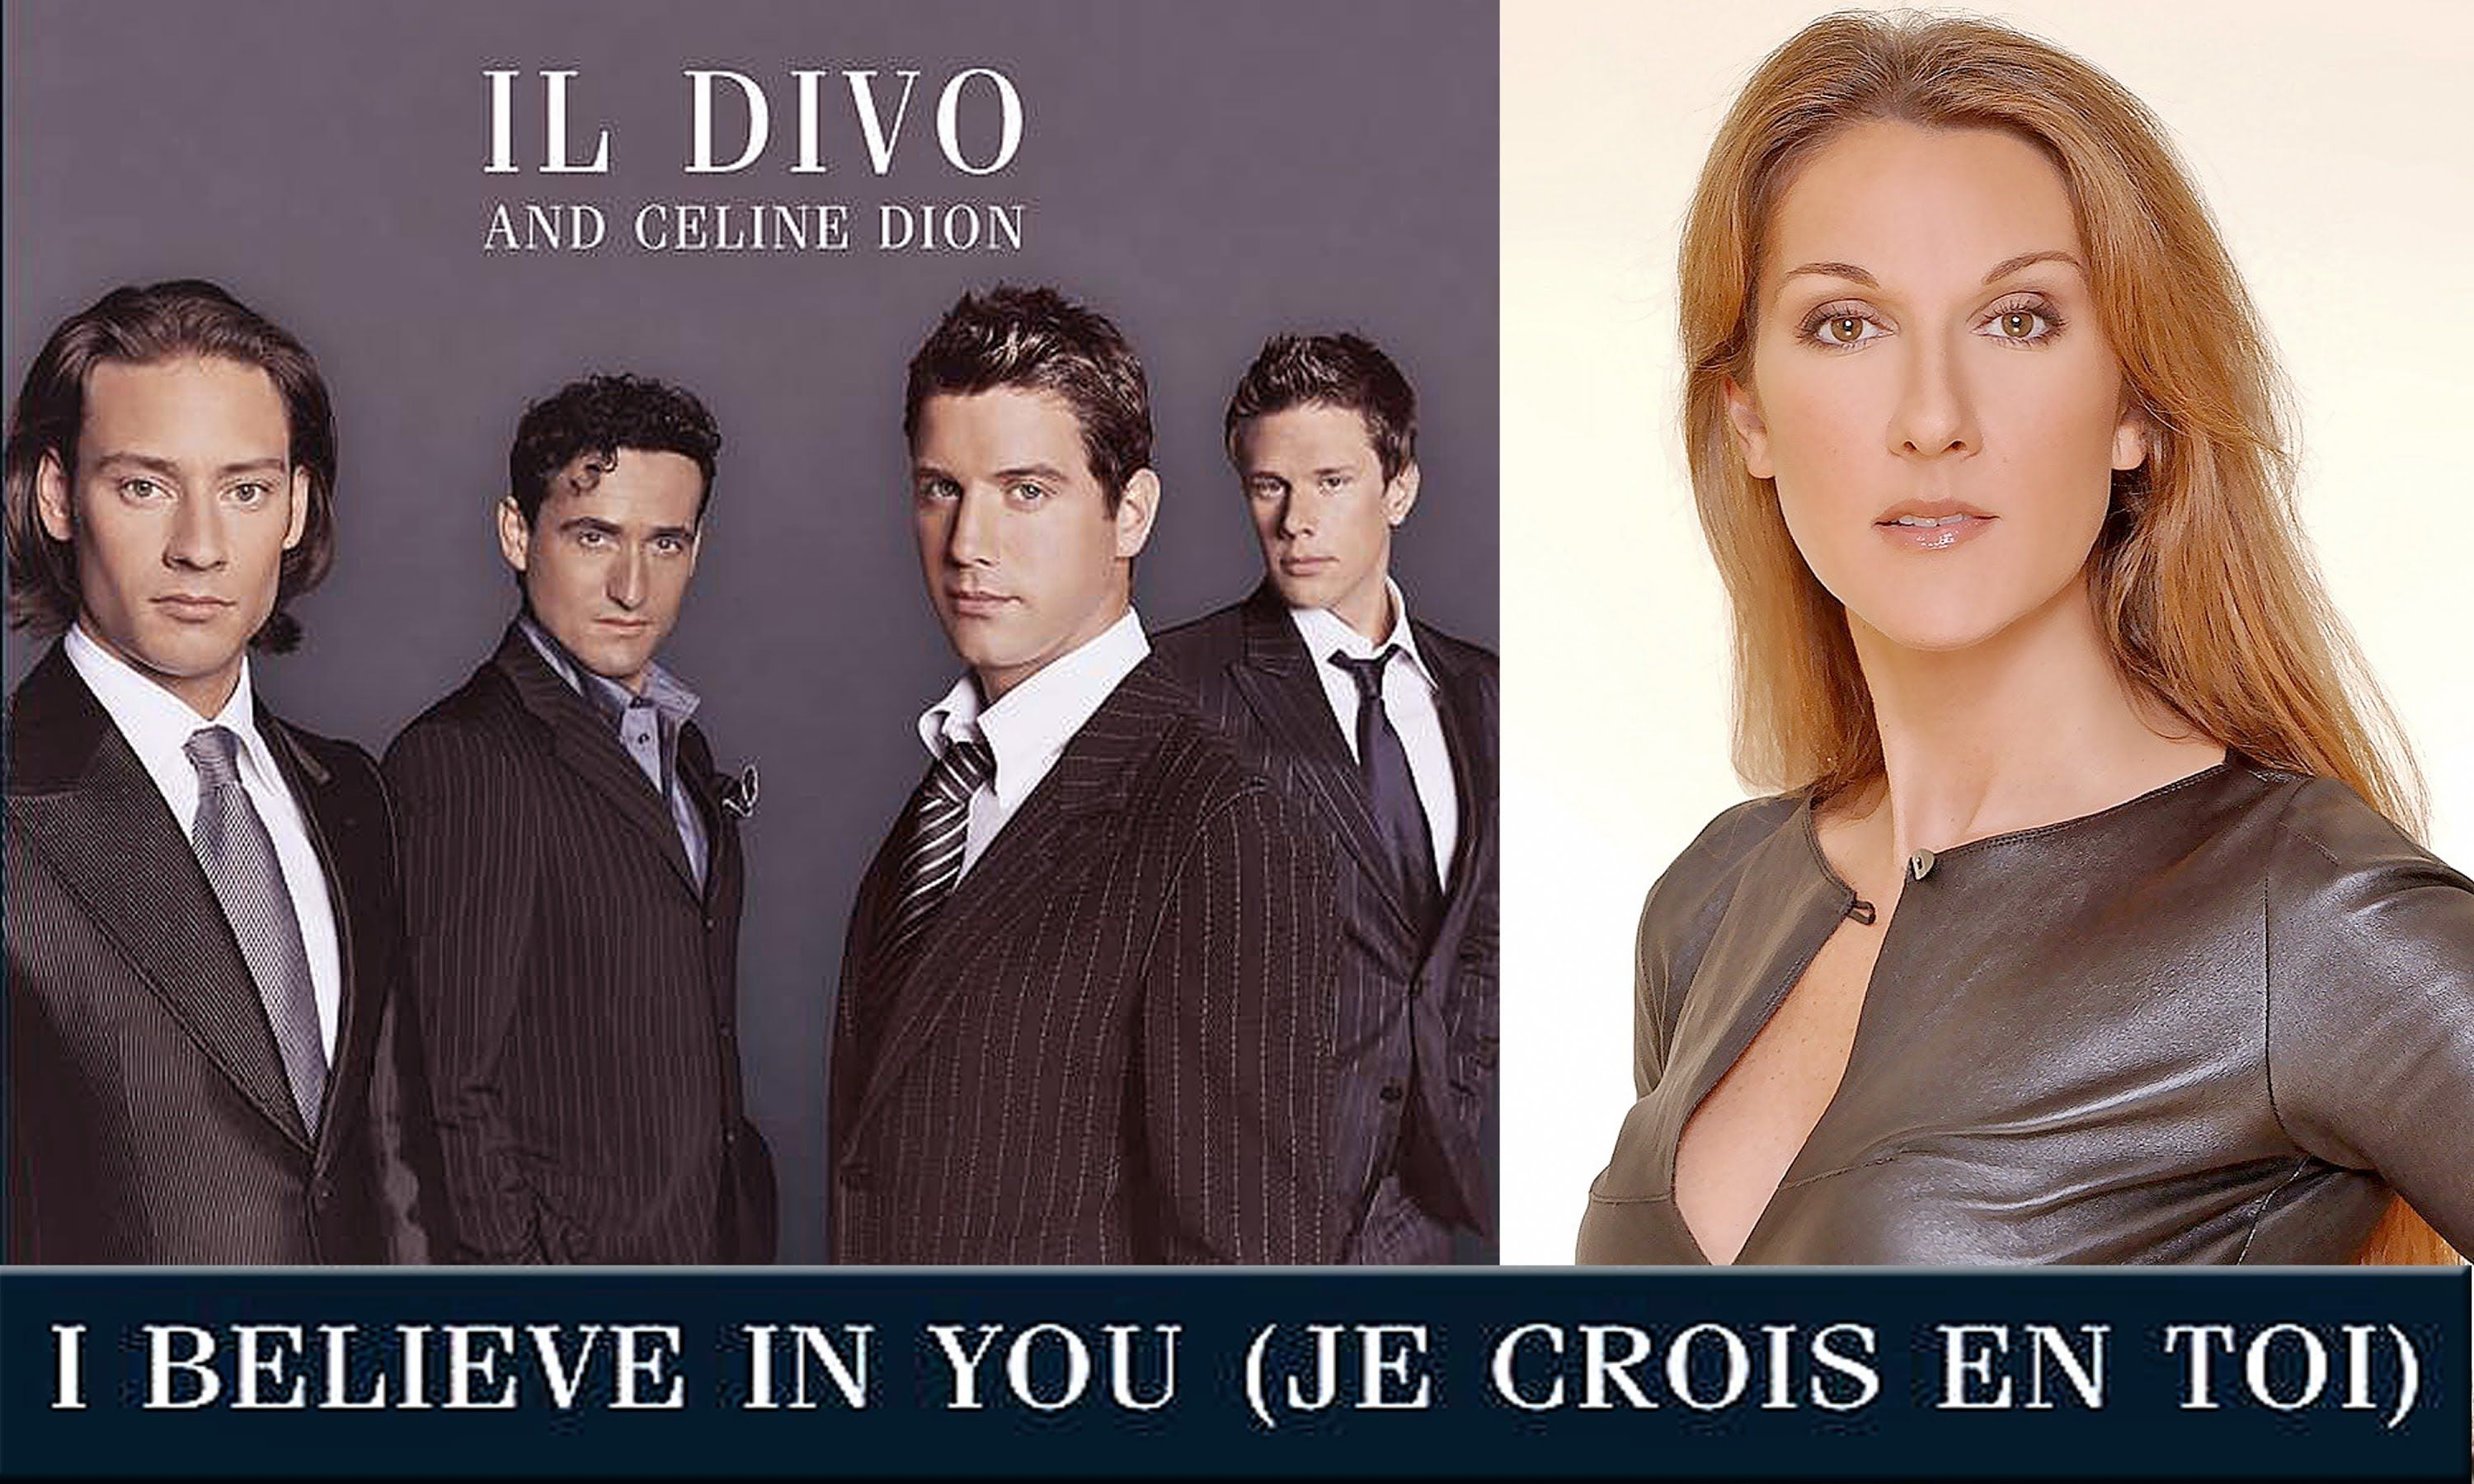 I Believe In You Il Divo Celine Dion Celine Dion Celine Dion Songs Believe